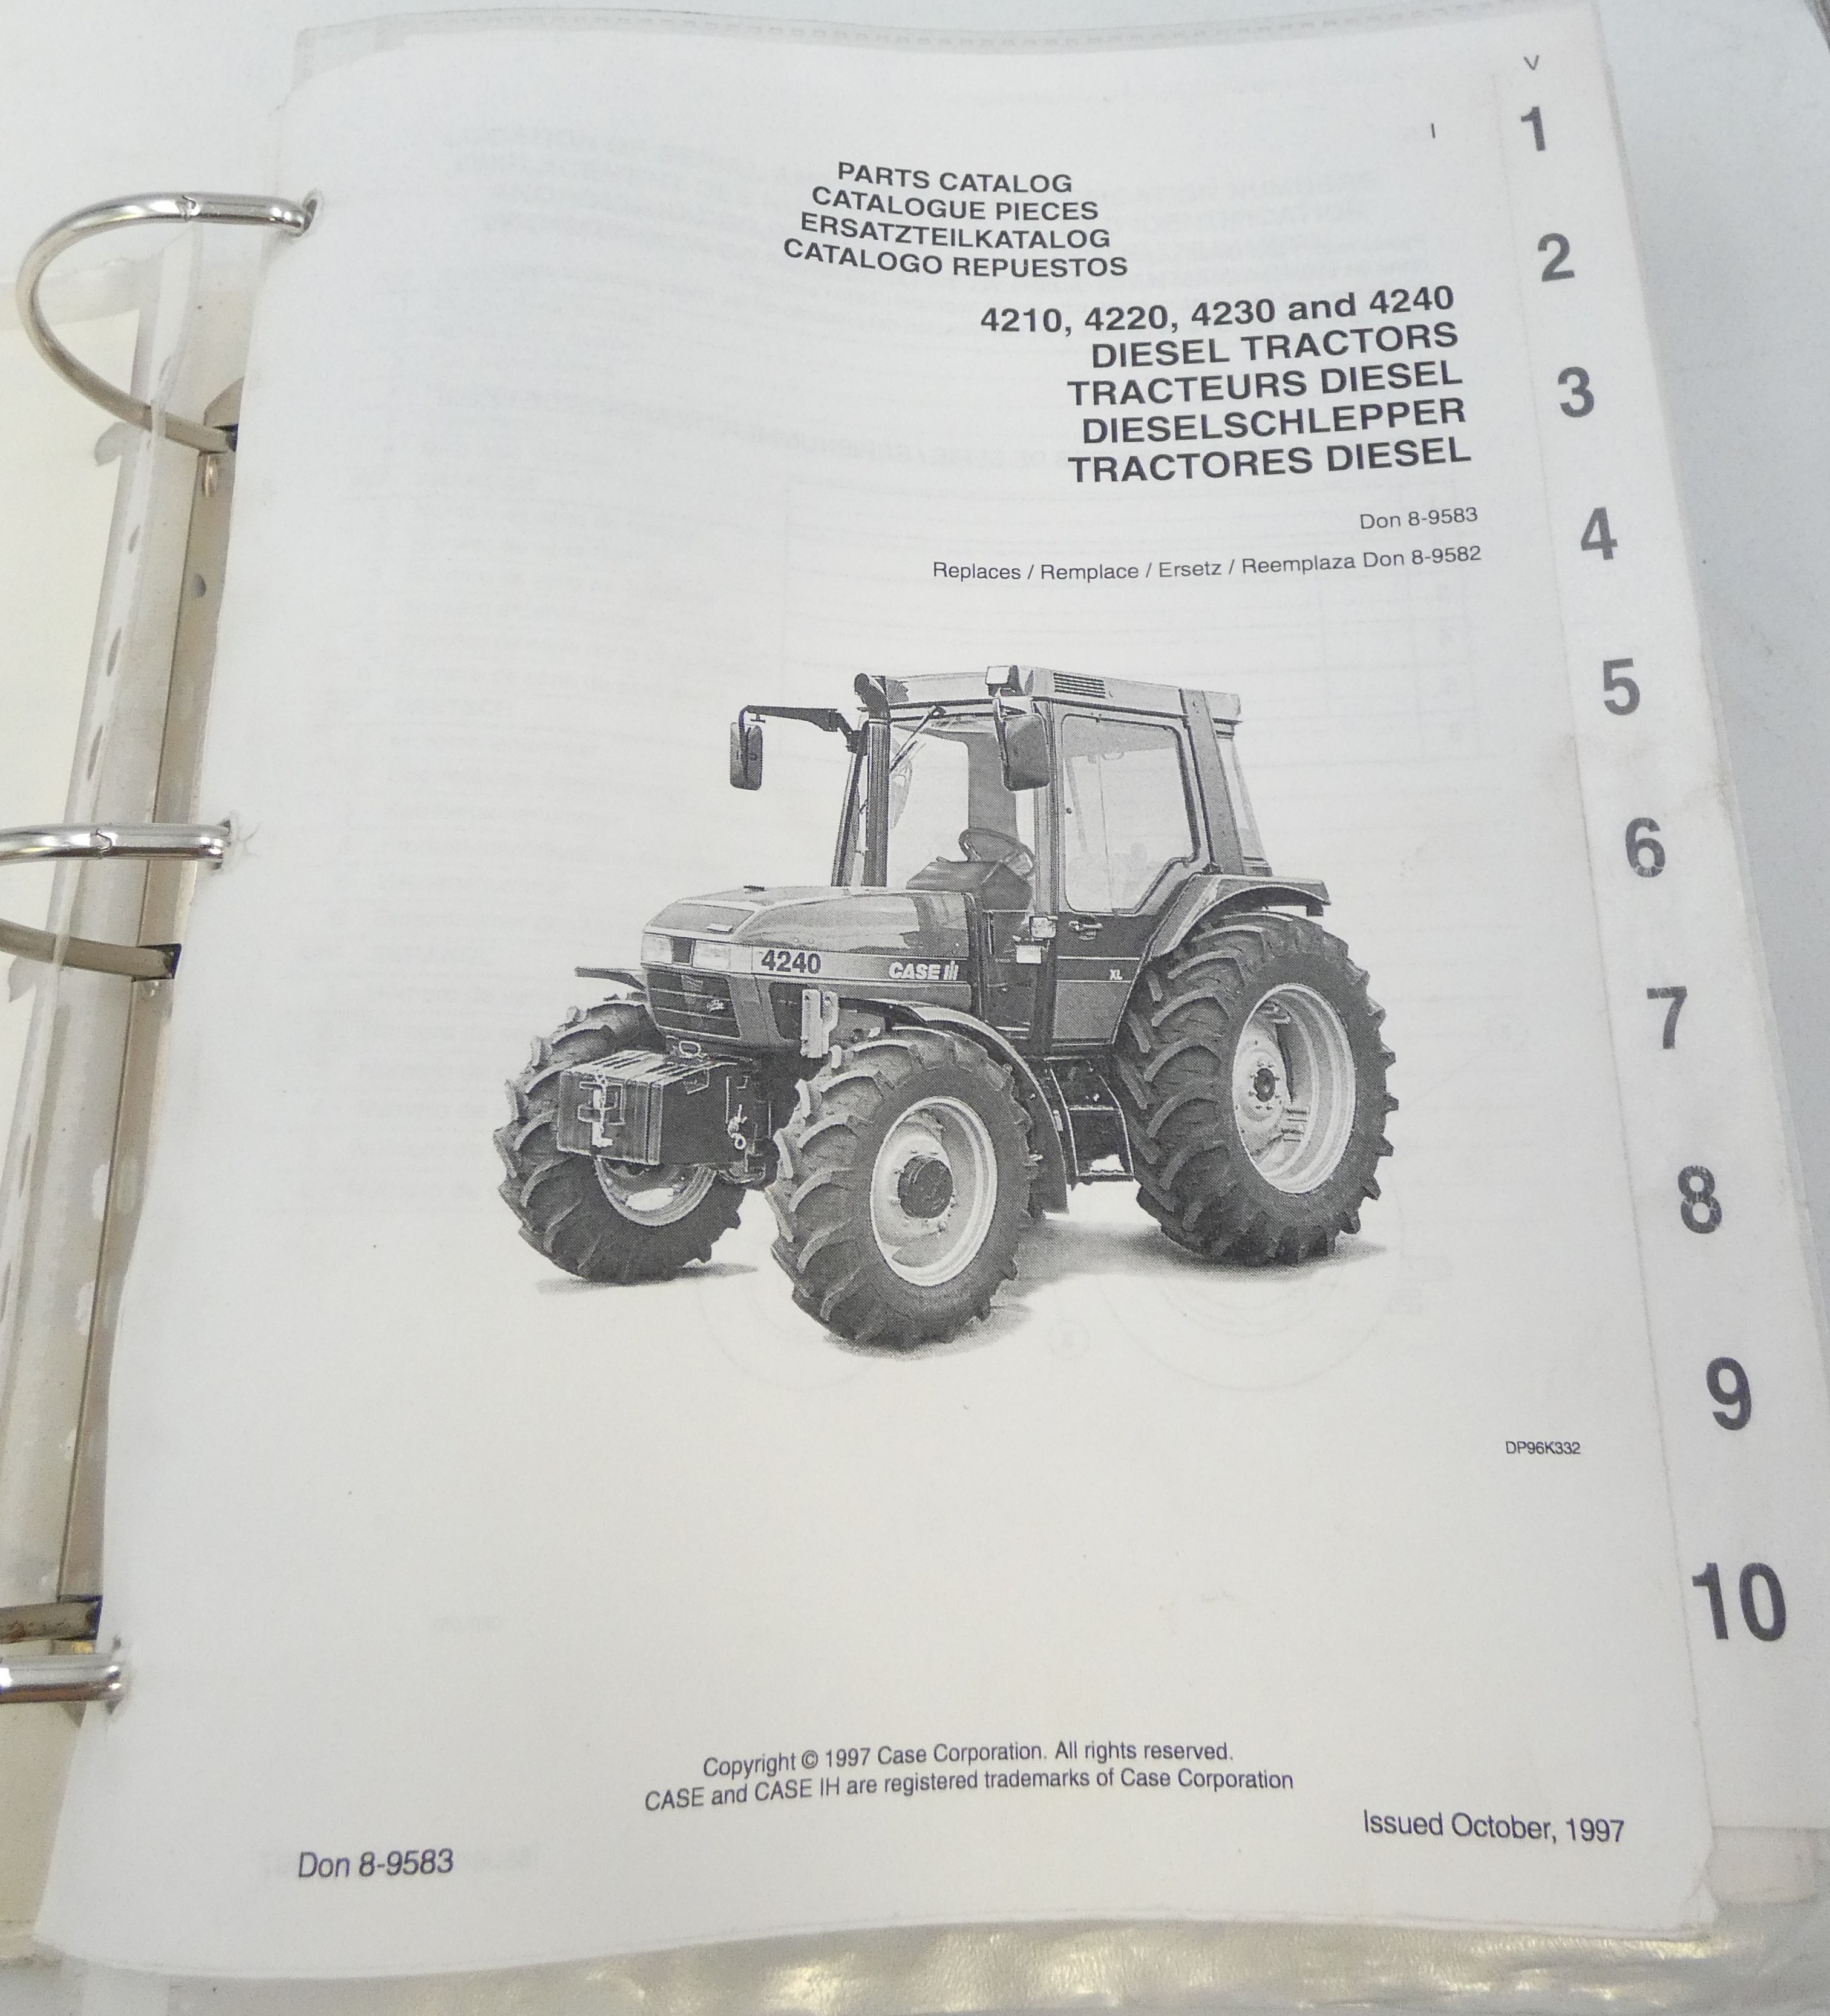 CaseIH 4210, 4220, 4230 and 4240 diesel tractors parts catalog